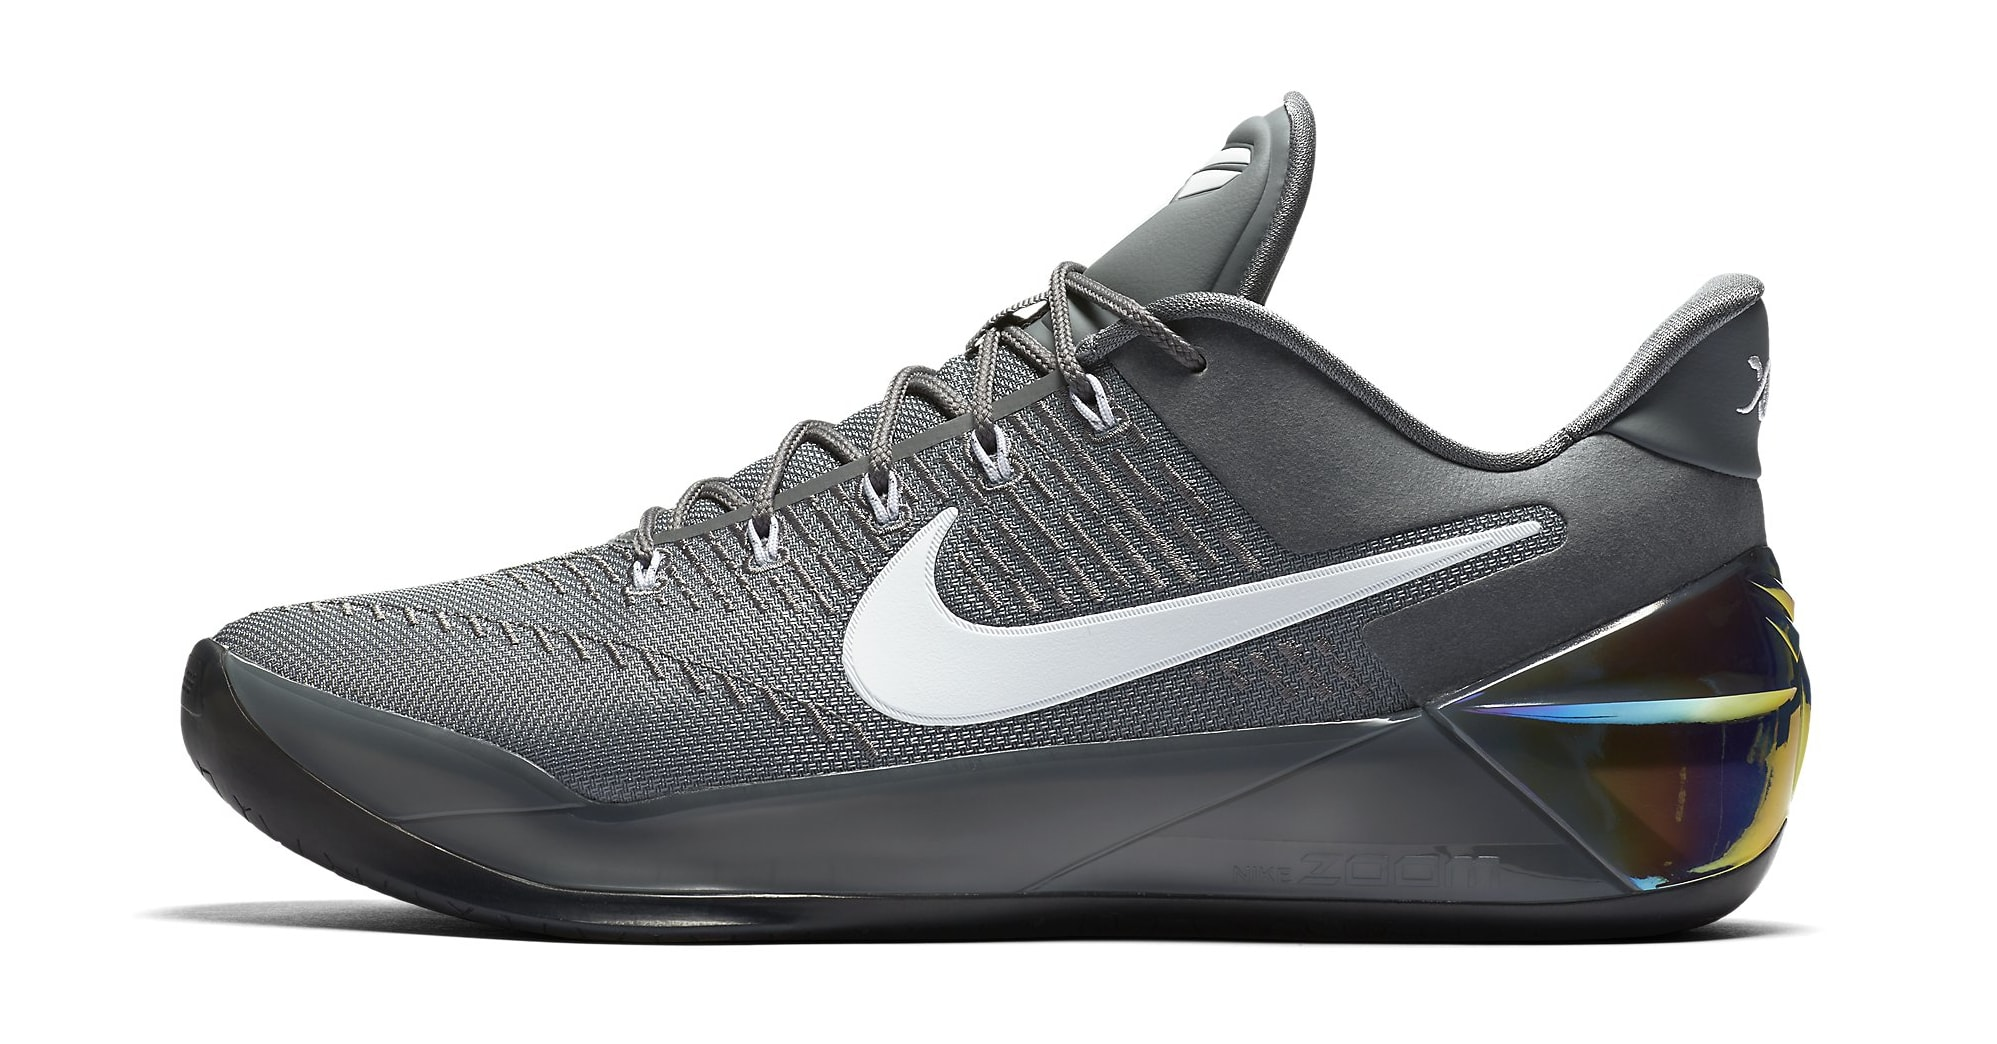 huge selection of f9466 97b05 spain nike kobe 9 elite low htm sneakernews 12ff7 e9242  canada nike kobe  a.d. 22ad2 4f762